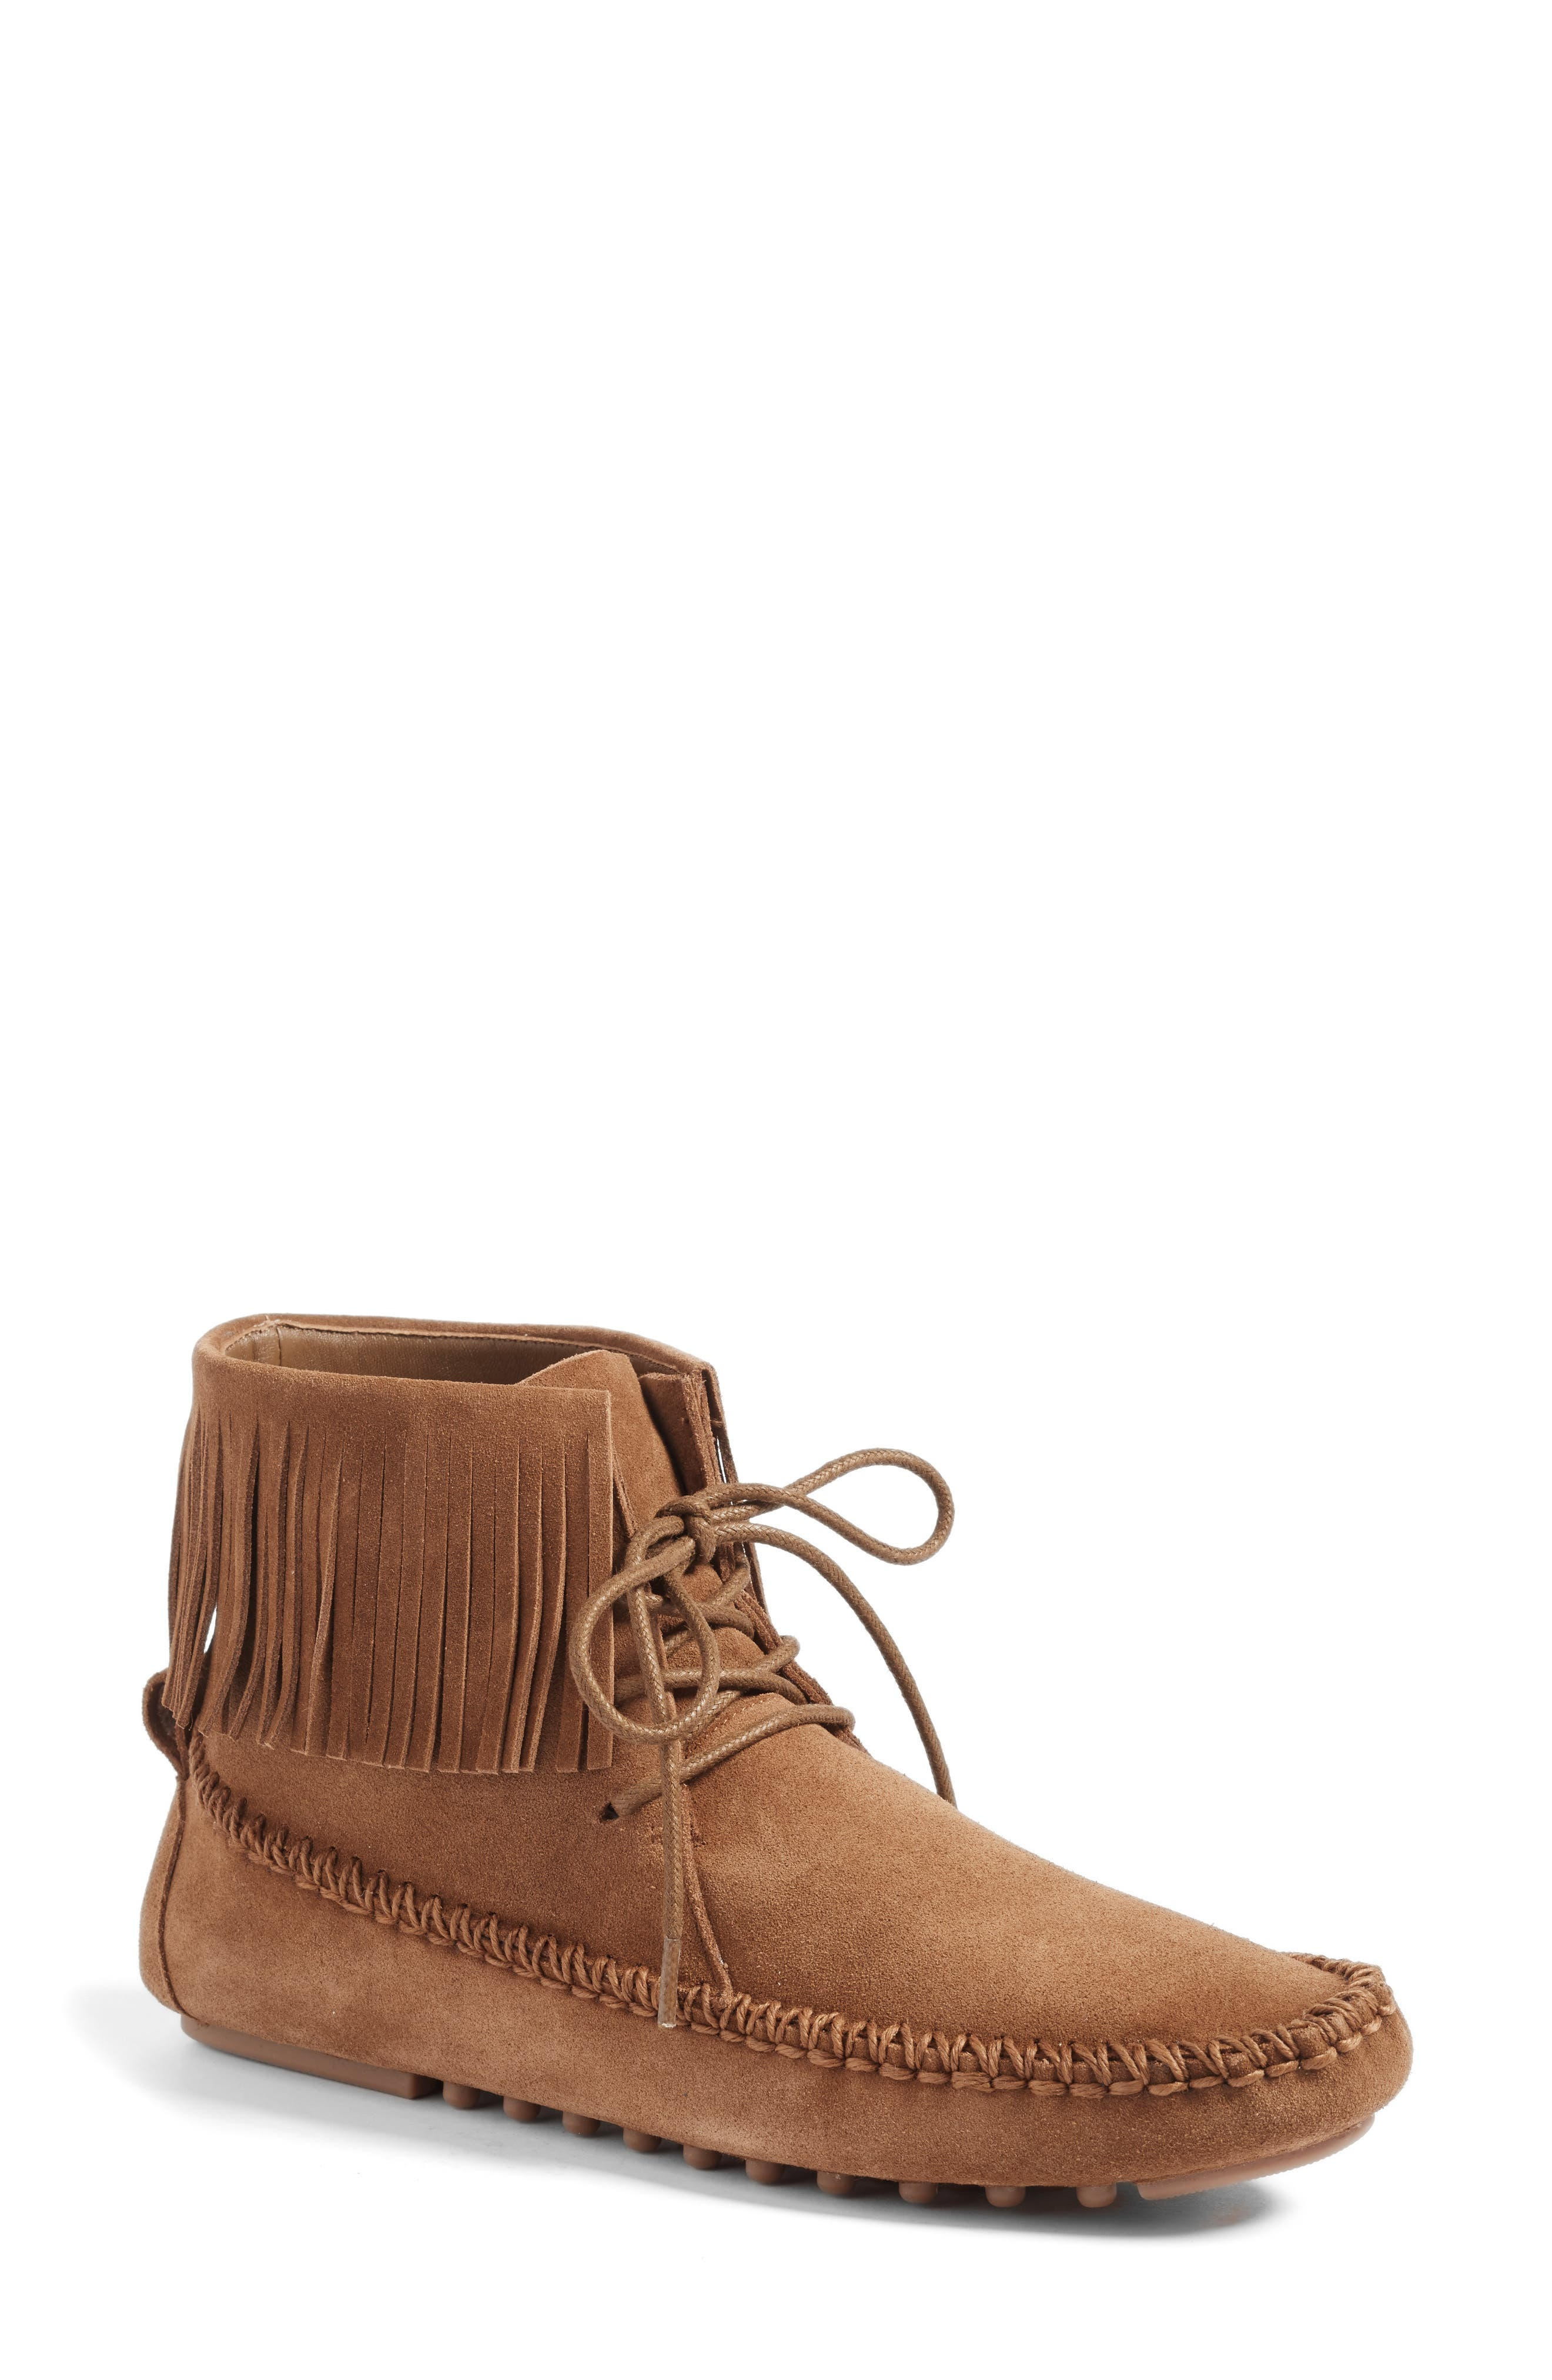 Alternate Image 1 Selected - Tory Burch Sonoma Moccasin Bootie (Women)